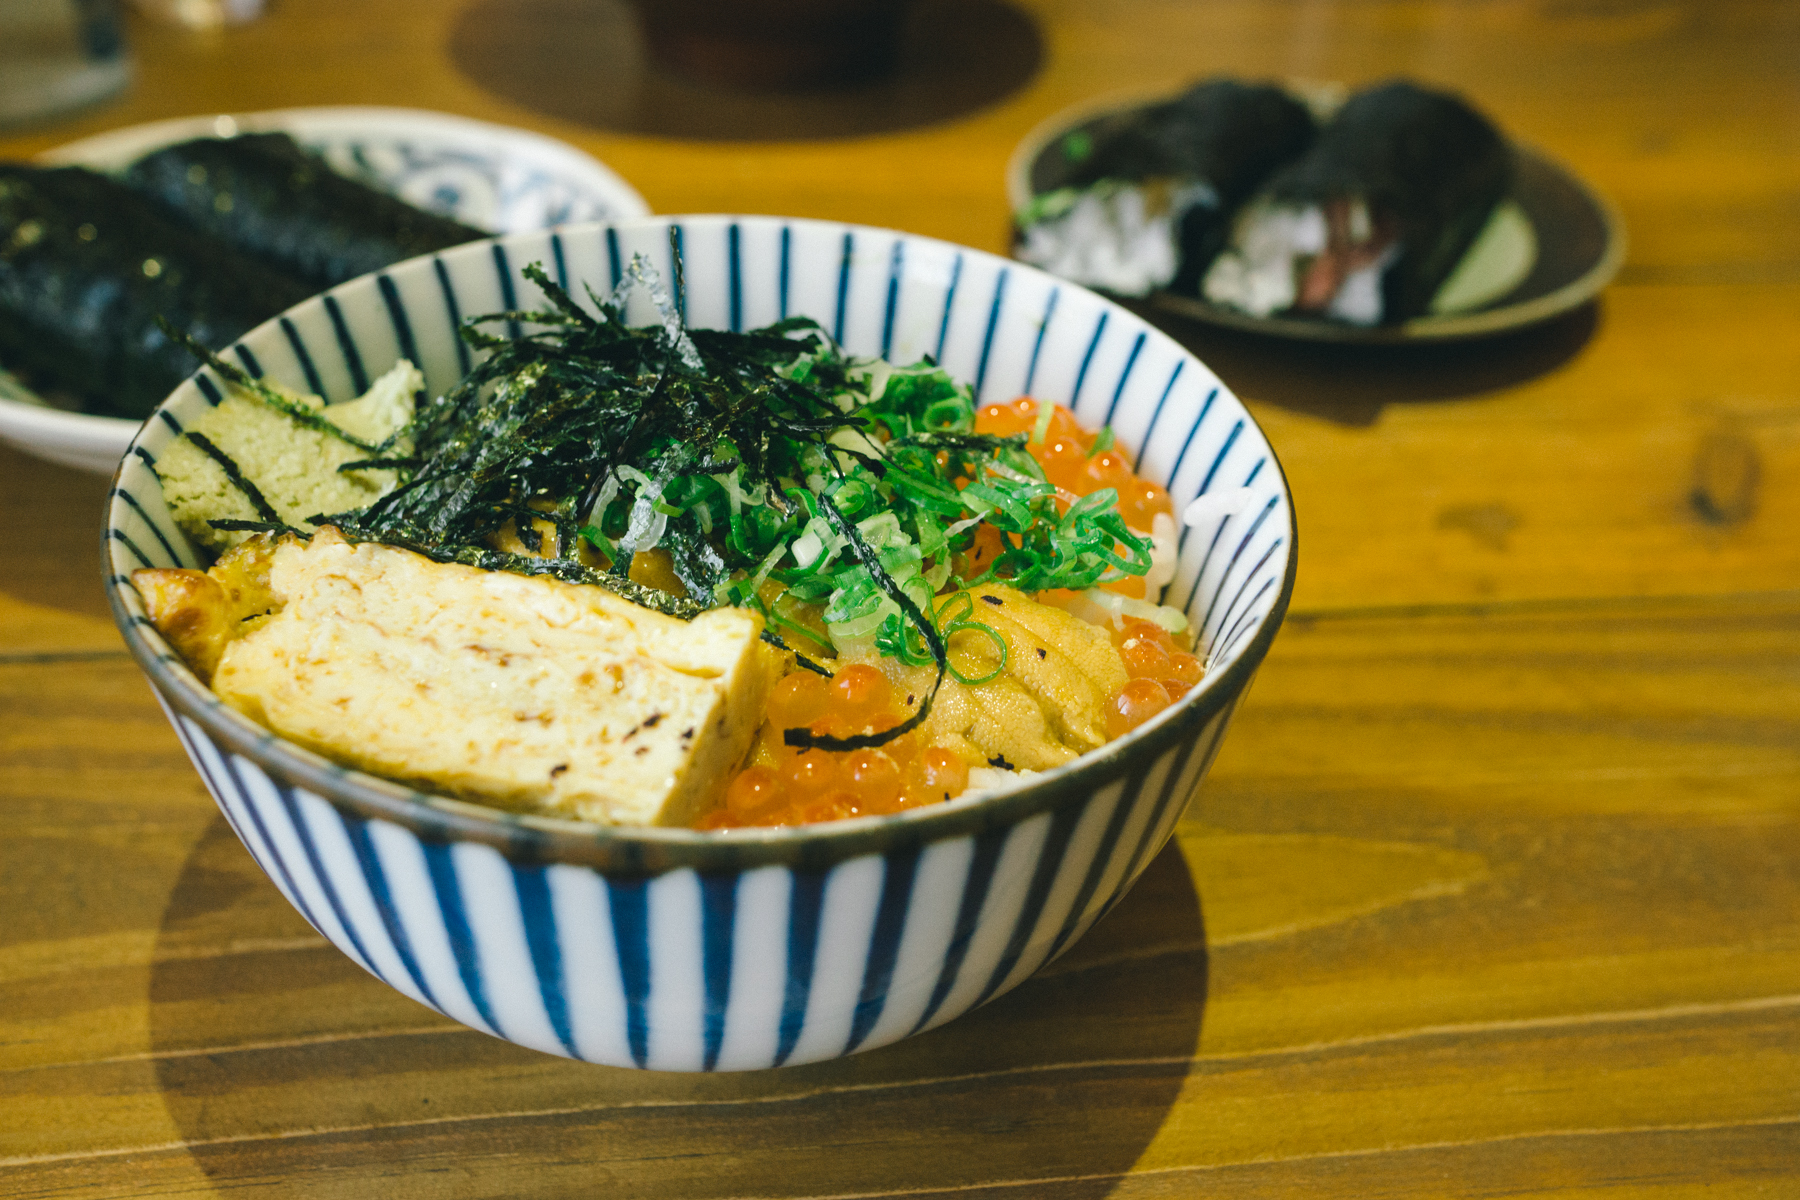 taipei-taiwan-瞞著爹三店-best-donburi-sushi-japanese-rice-bowl-restaurant-5